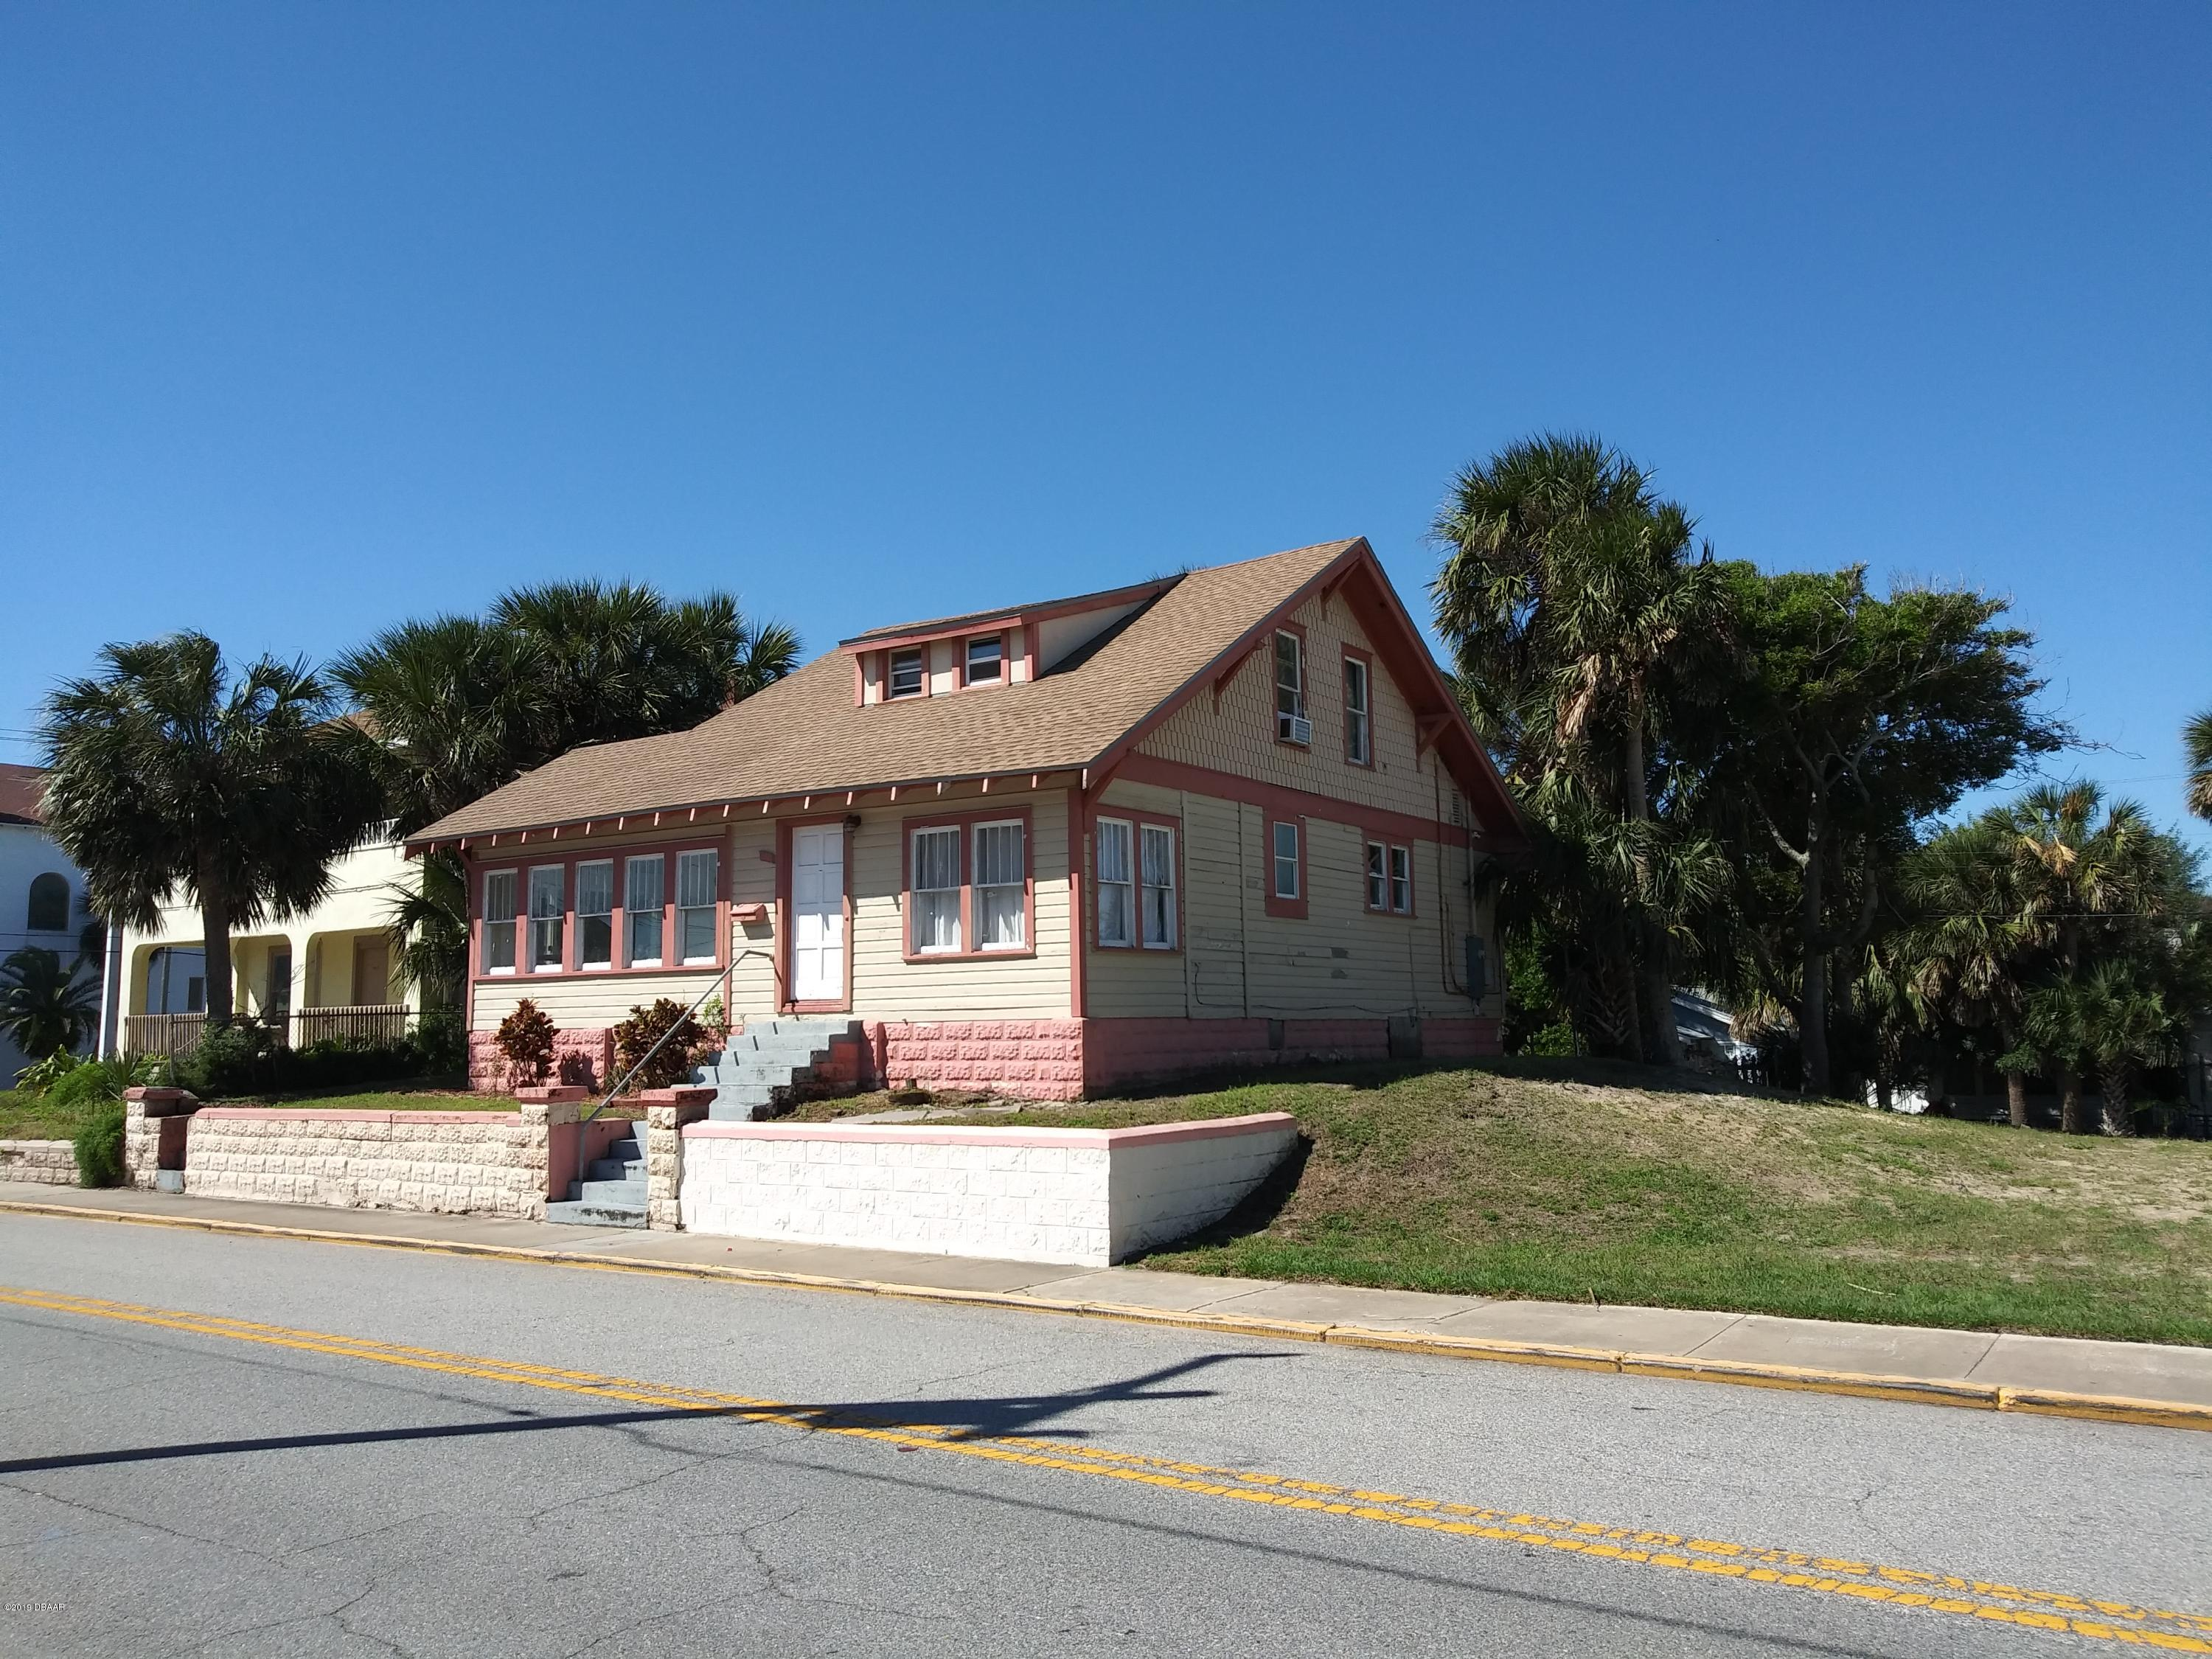 One of Daytona Beach Shores 3 Bedroom Homes for Sale at 38 S Grandview Avenue